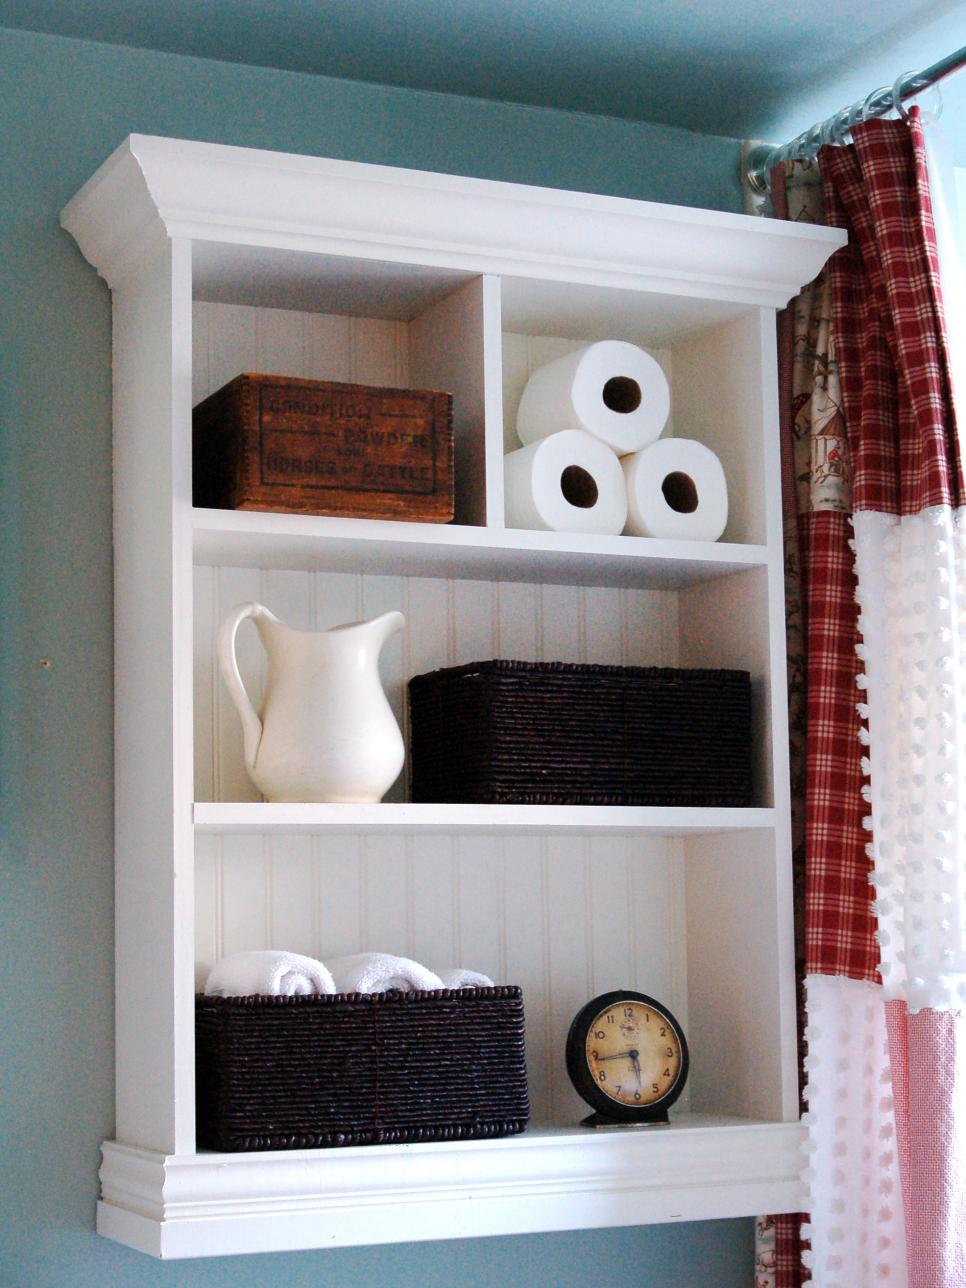 Storage Bathroom Ideas Interesting 12 Clever Bathroom Storage Ideas  Hgtv Design Ideas